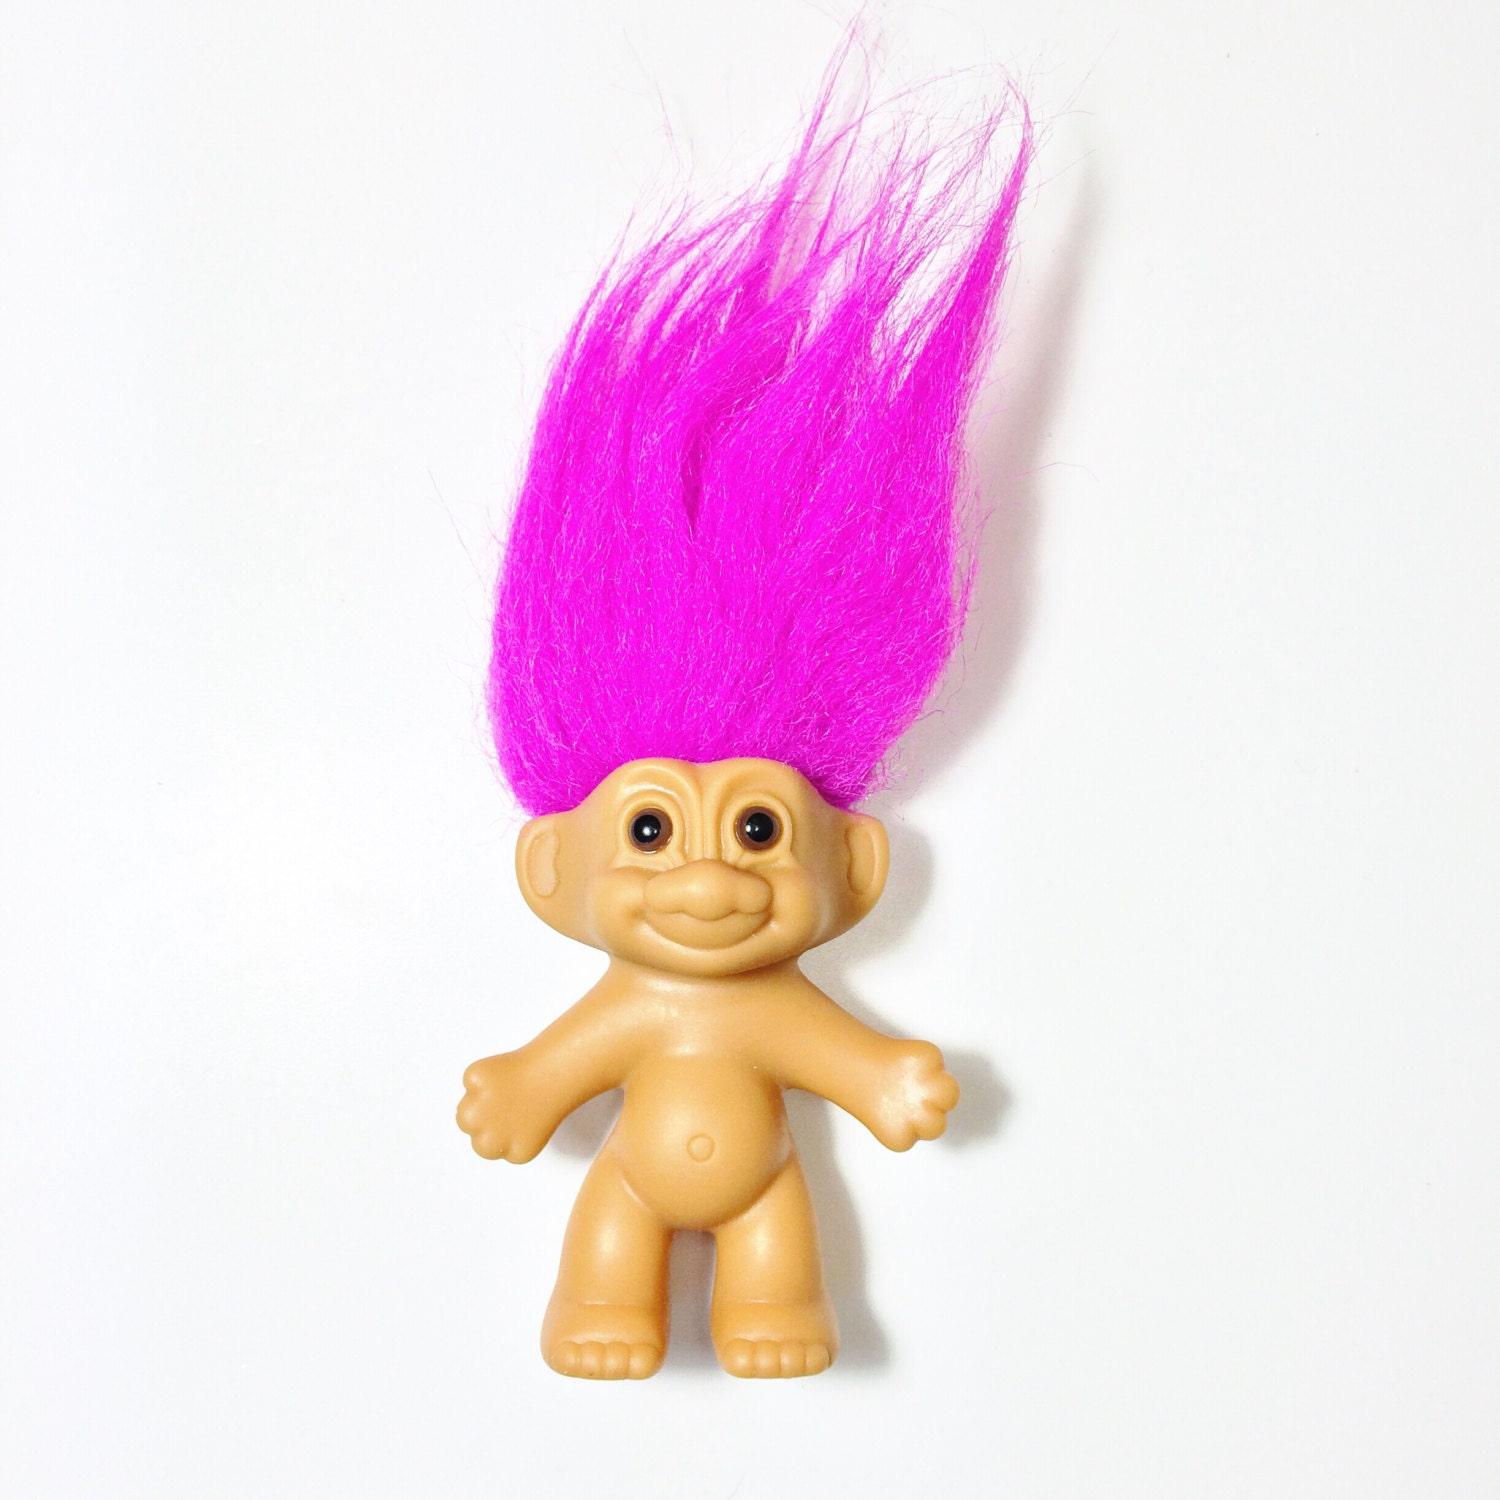 Purple Haired Troll Doll Russ Troll Doll Kawaii Grunge